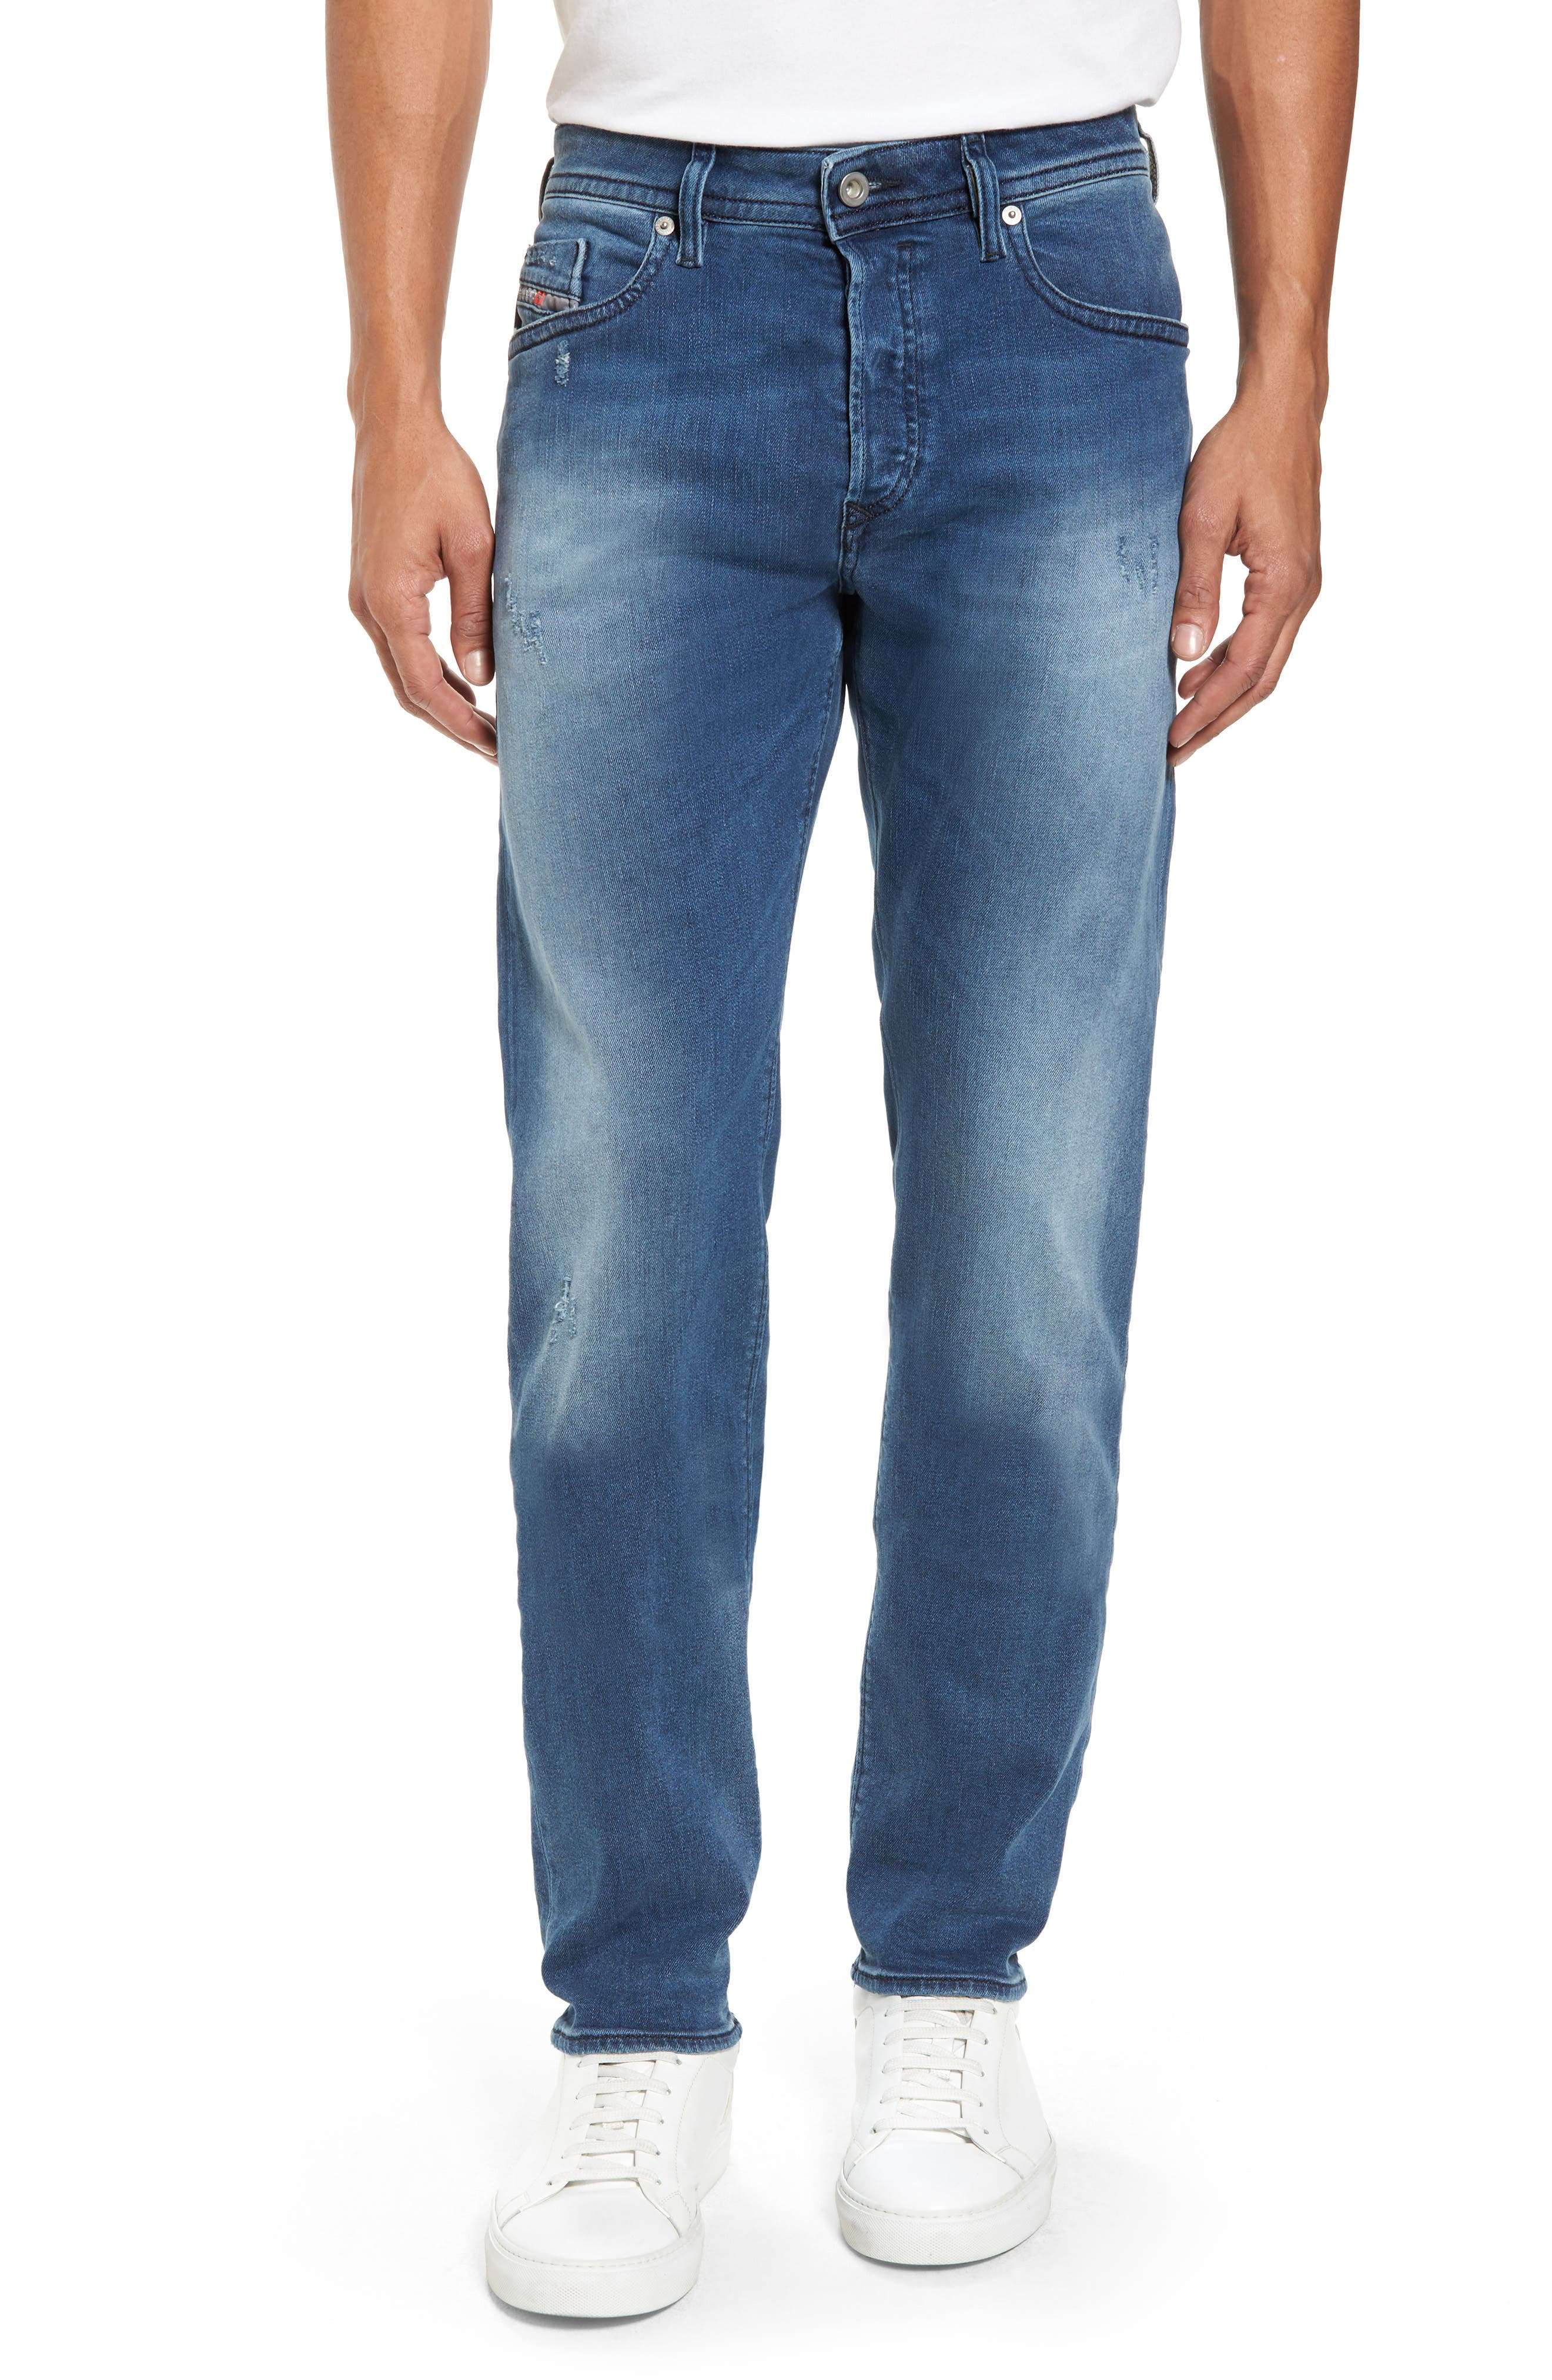 Buster Slim Straight Fit Jeans,                         Main,                         color,